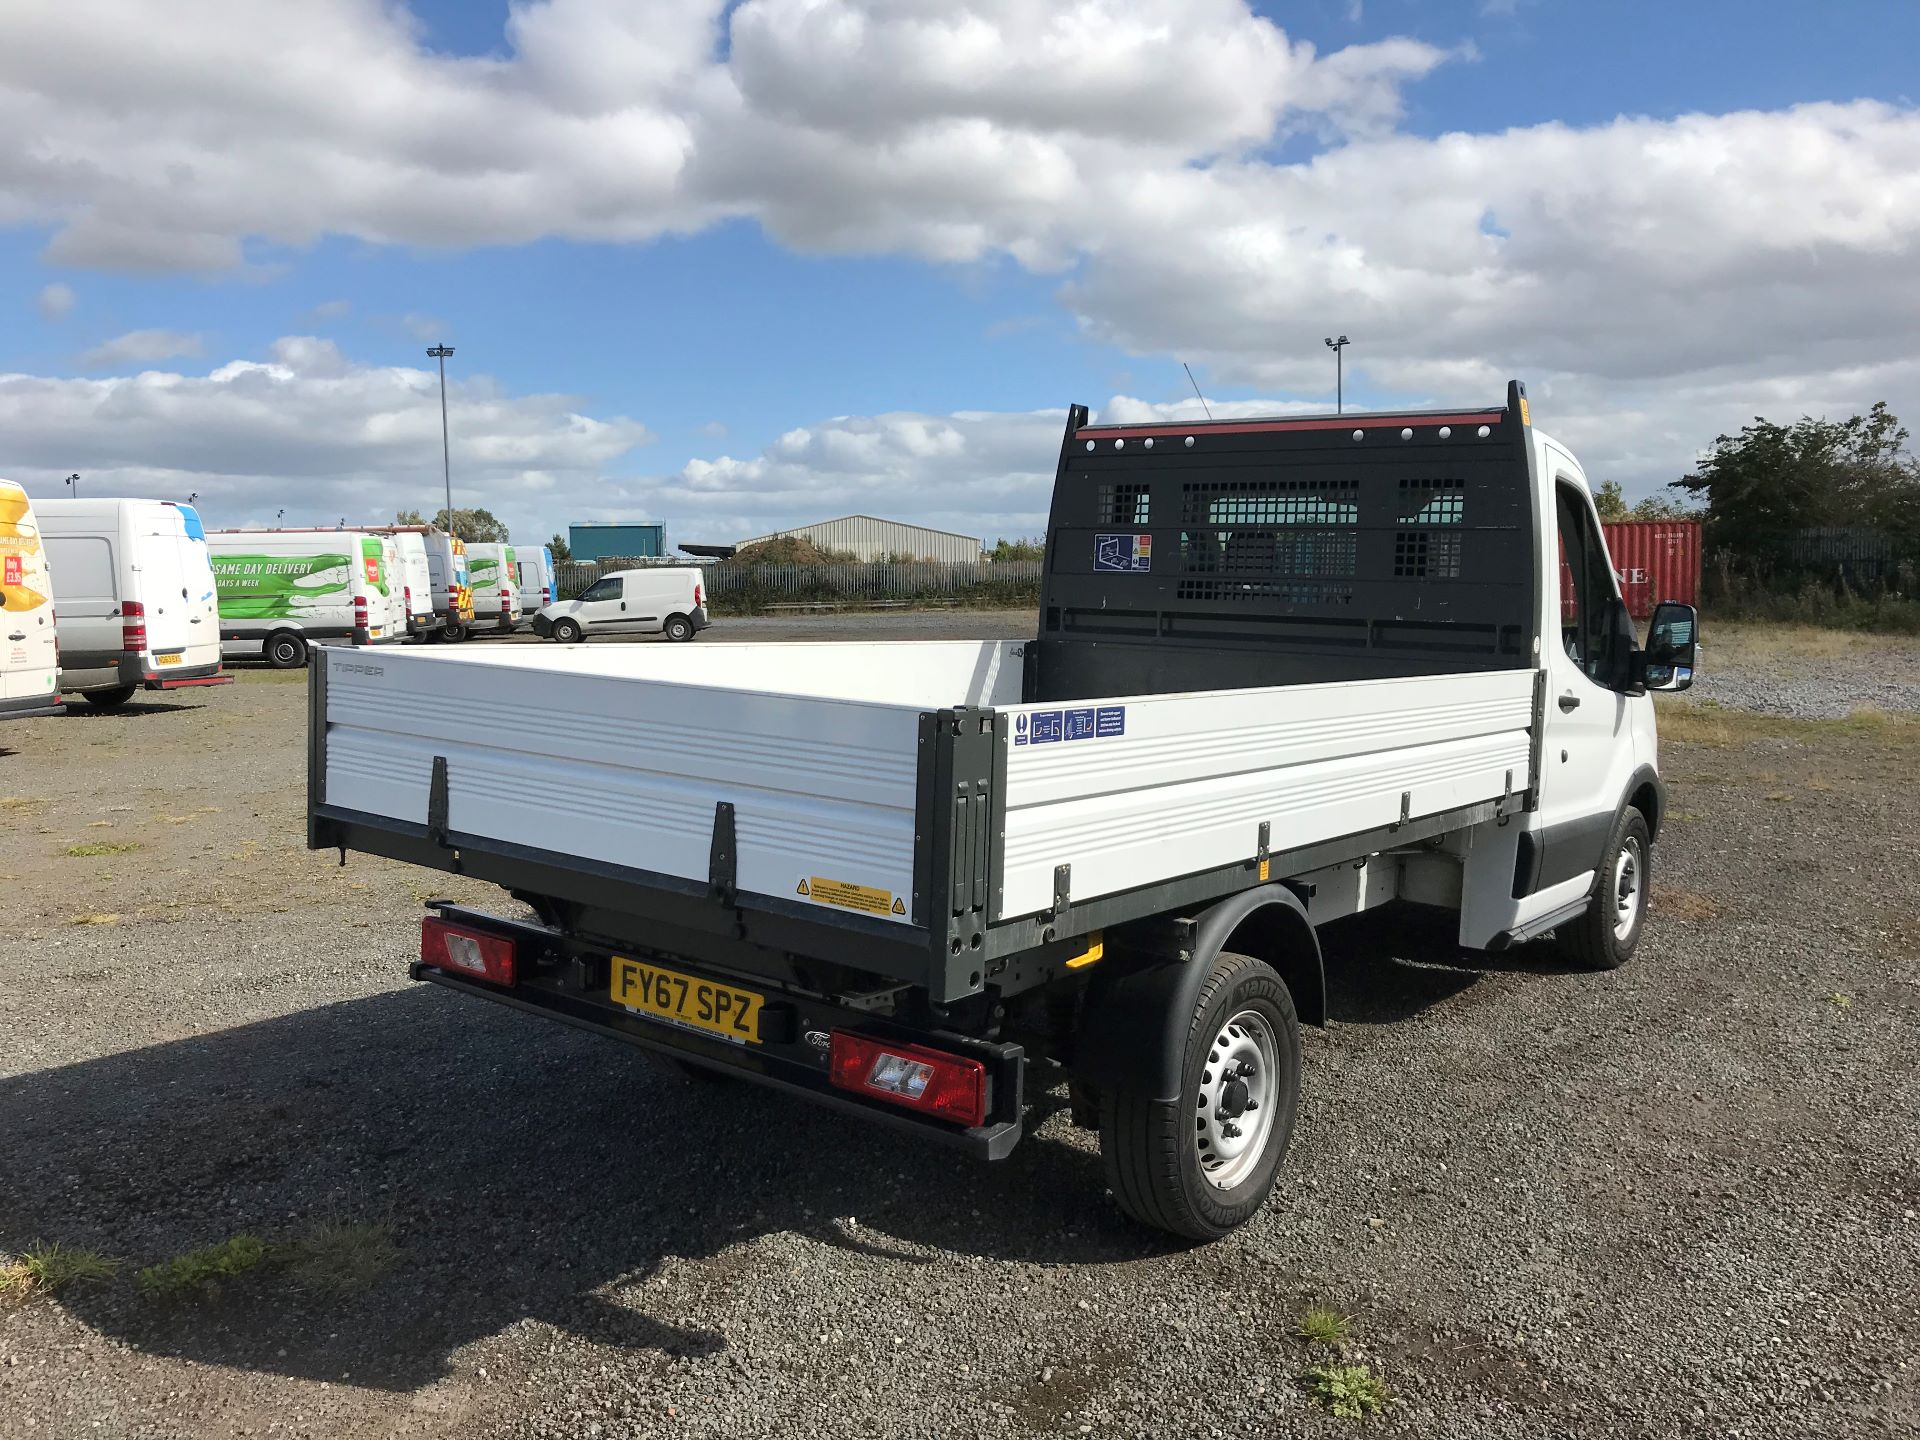 2018 Ford Transit 2.0 Tdci 130Ps Tipper (FY67SPZ) Thumbnail 7